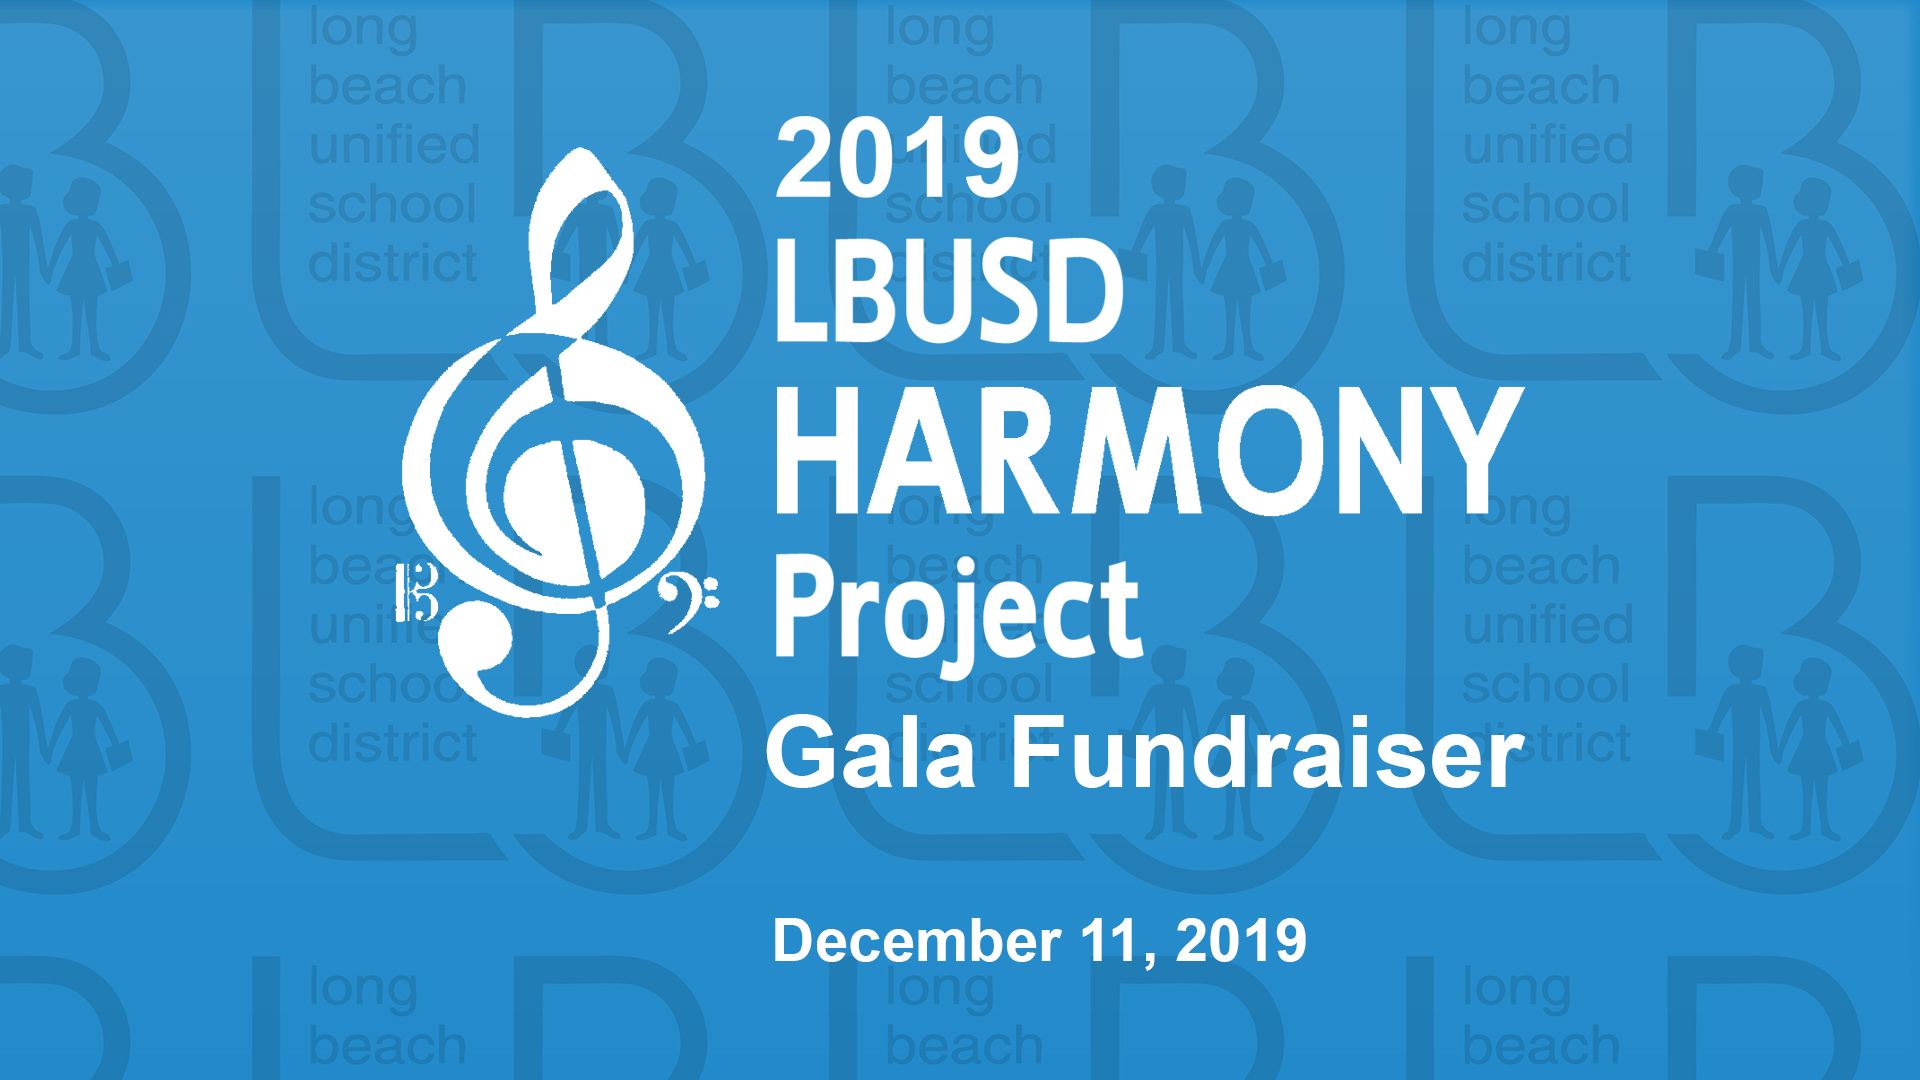 Harmony Project Gala Fundraiser 2019 - Video